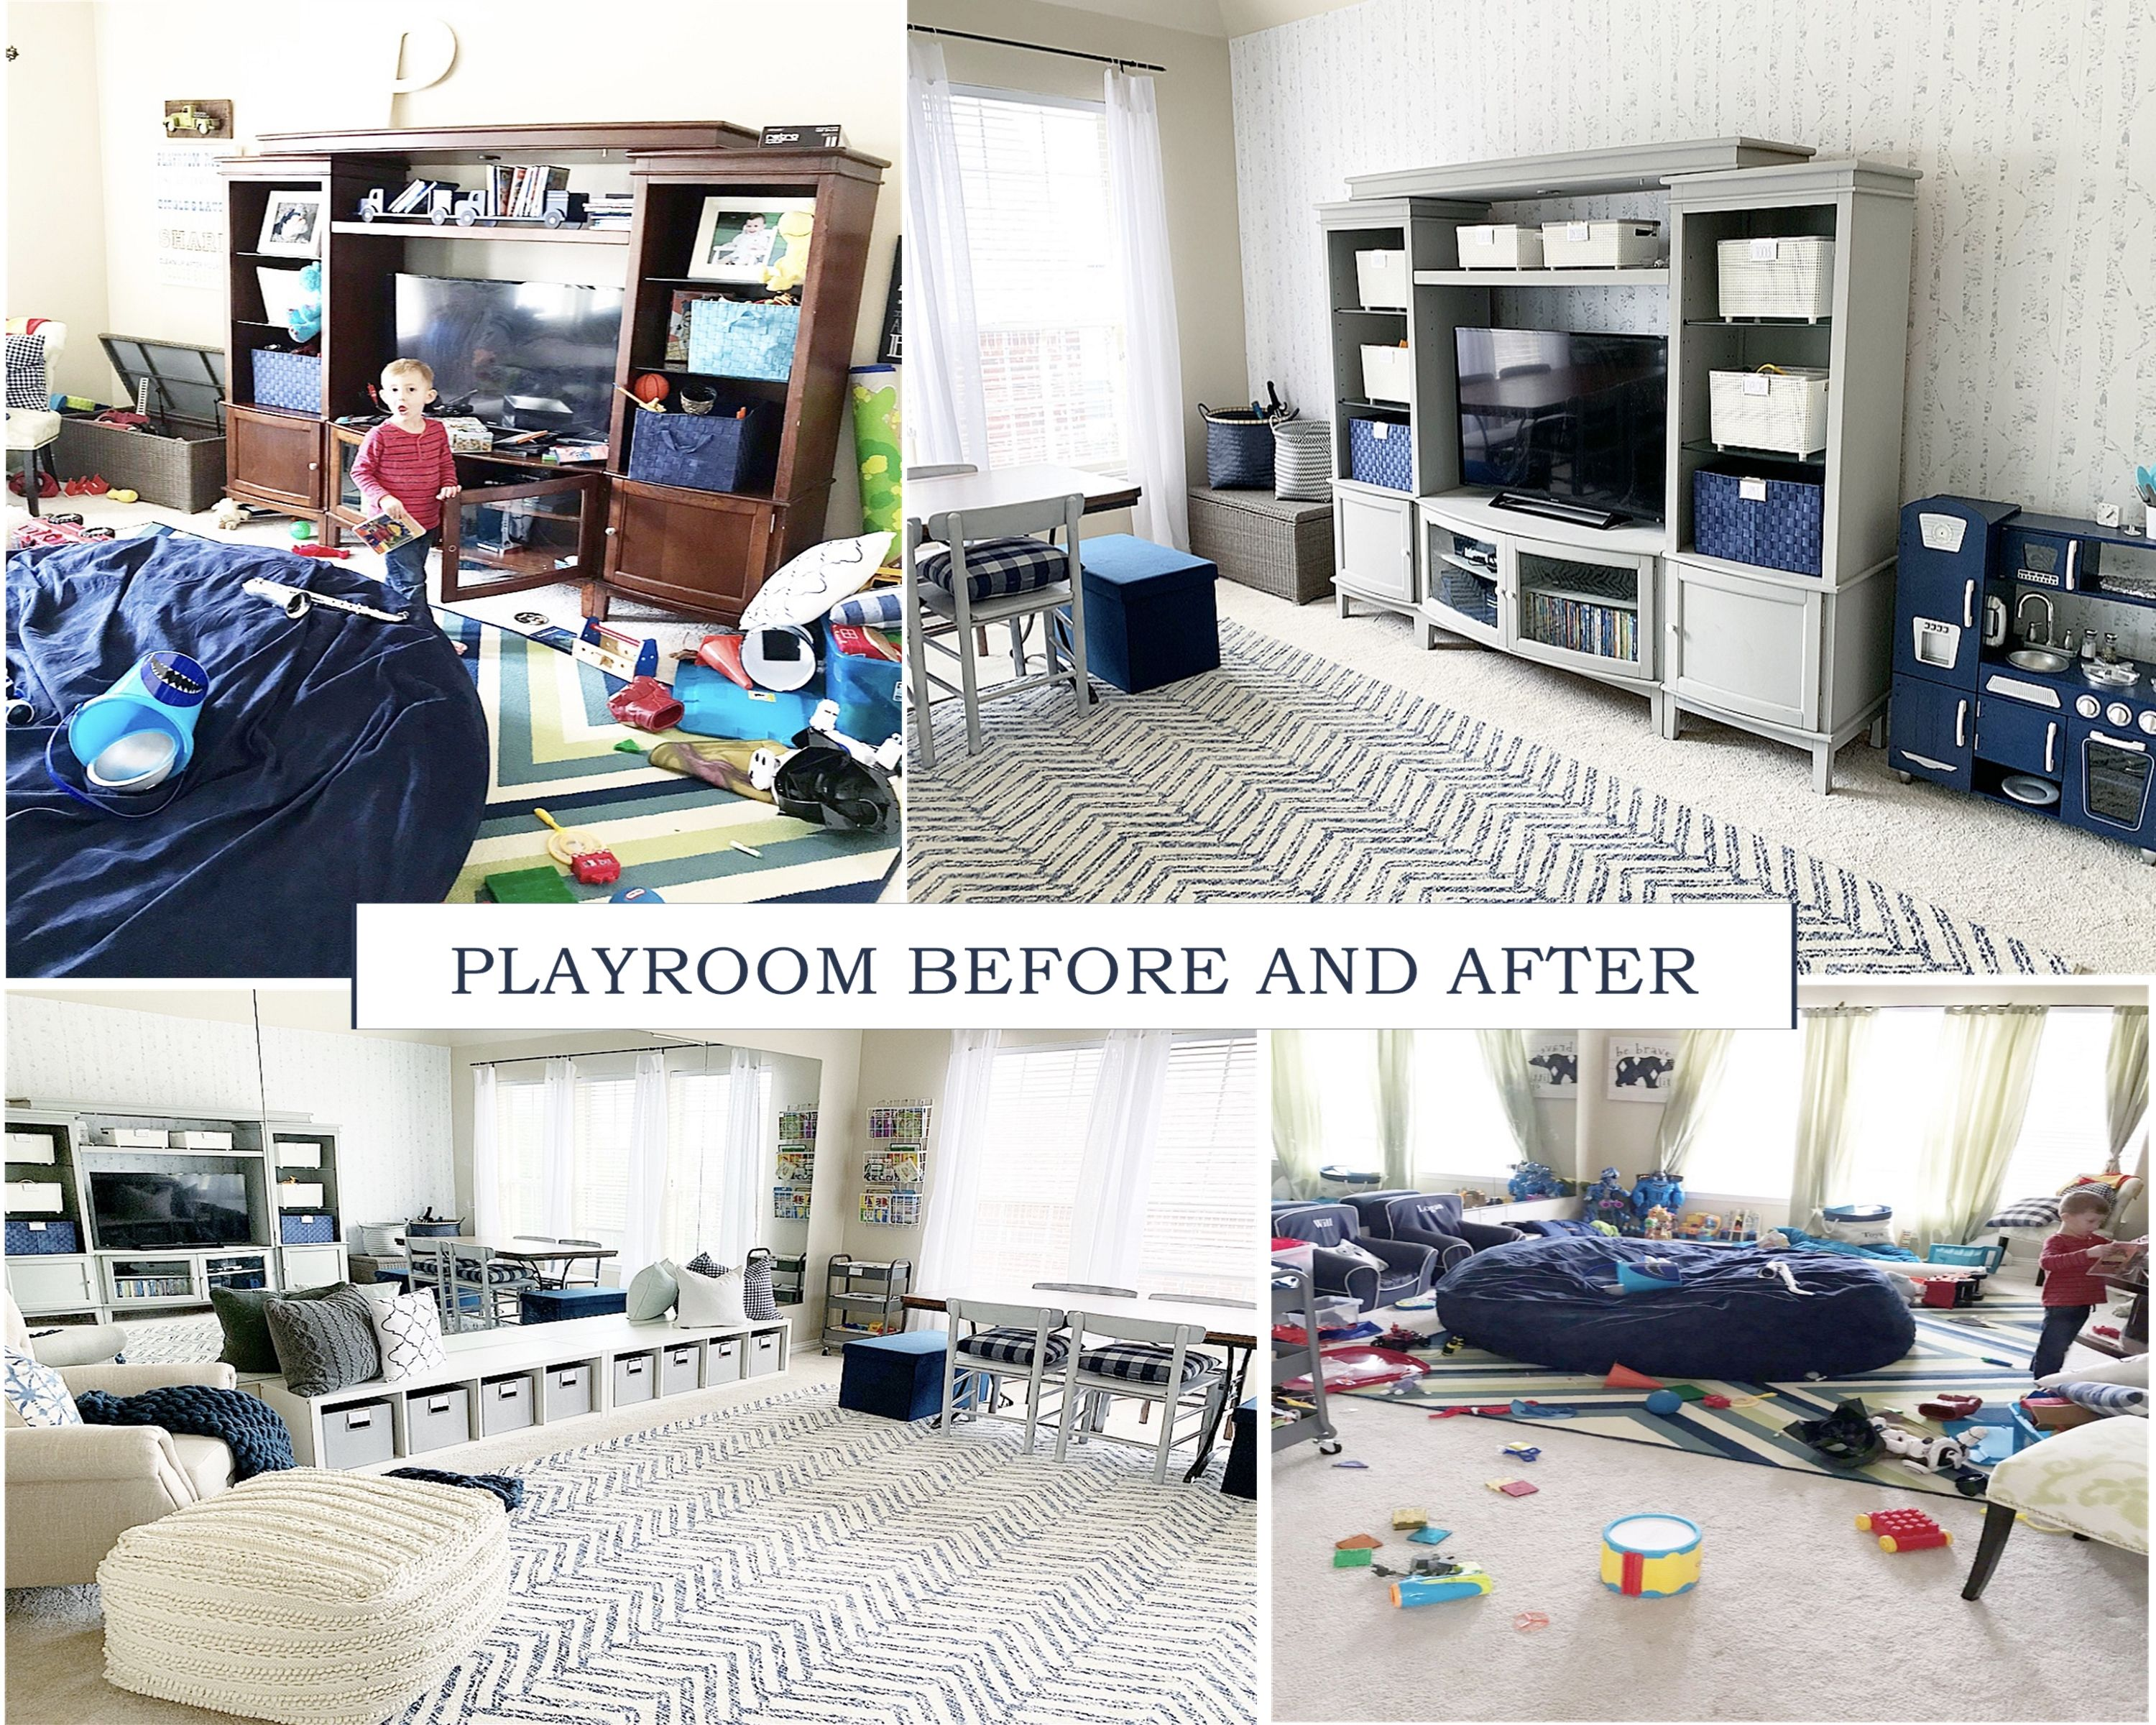 How To Organize Your Playroom With Ease | Playroom, Kids